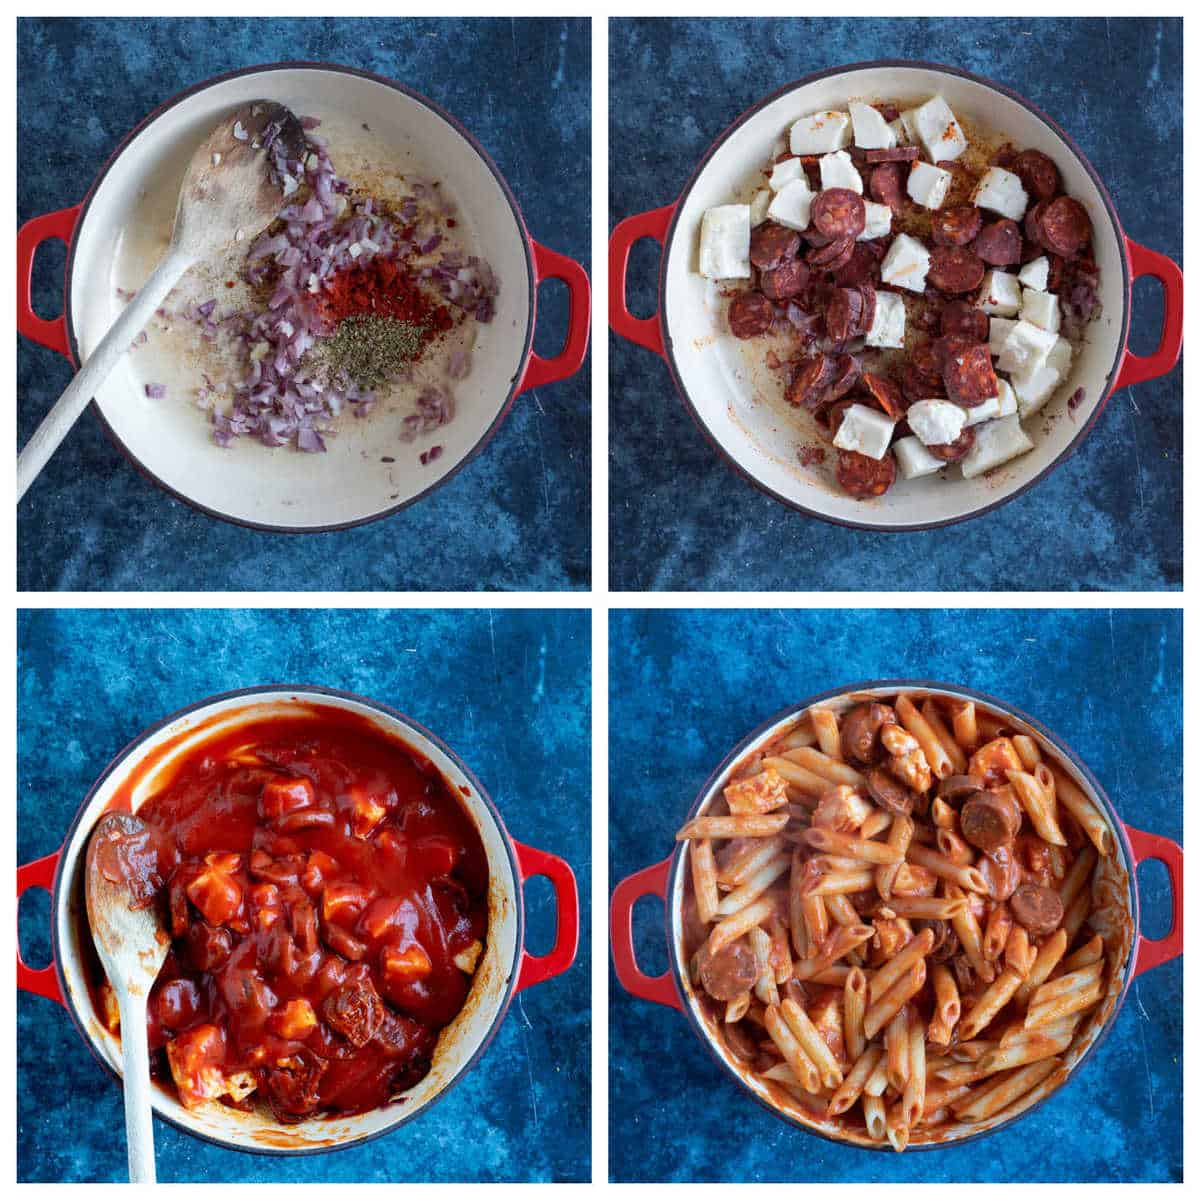 Step by step photo instructions for making the halloumi pasta.